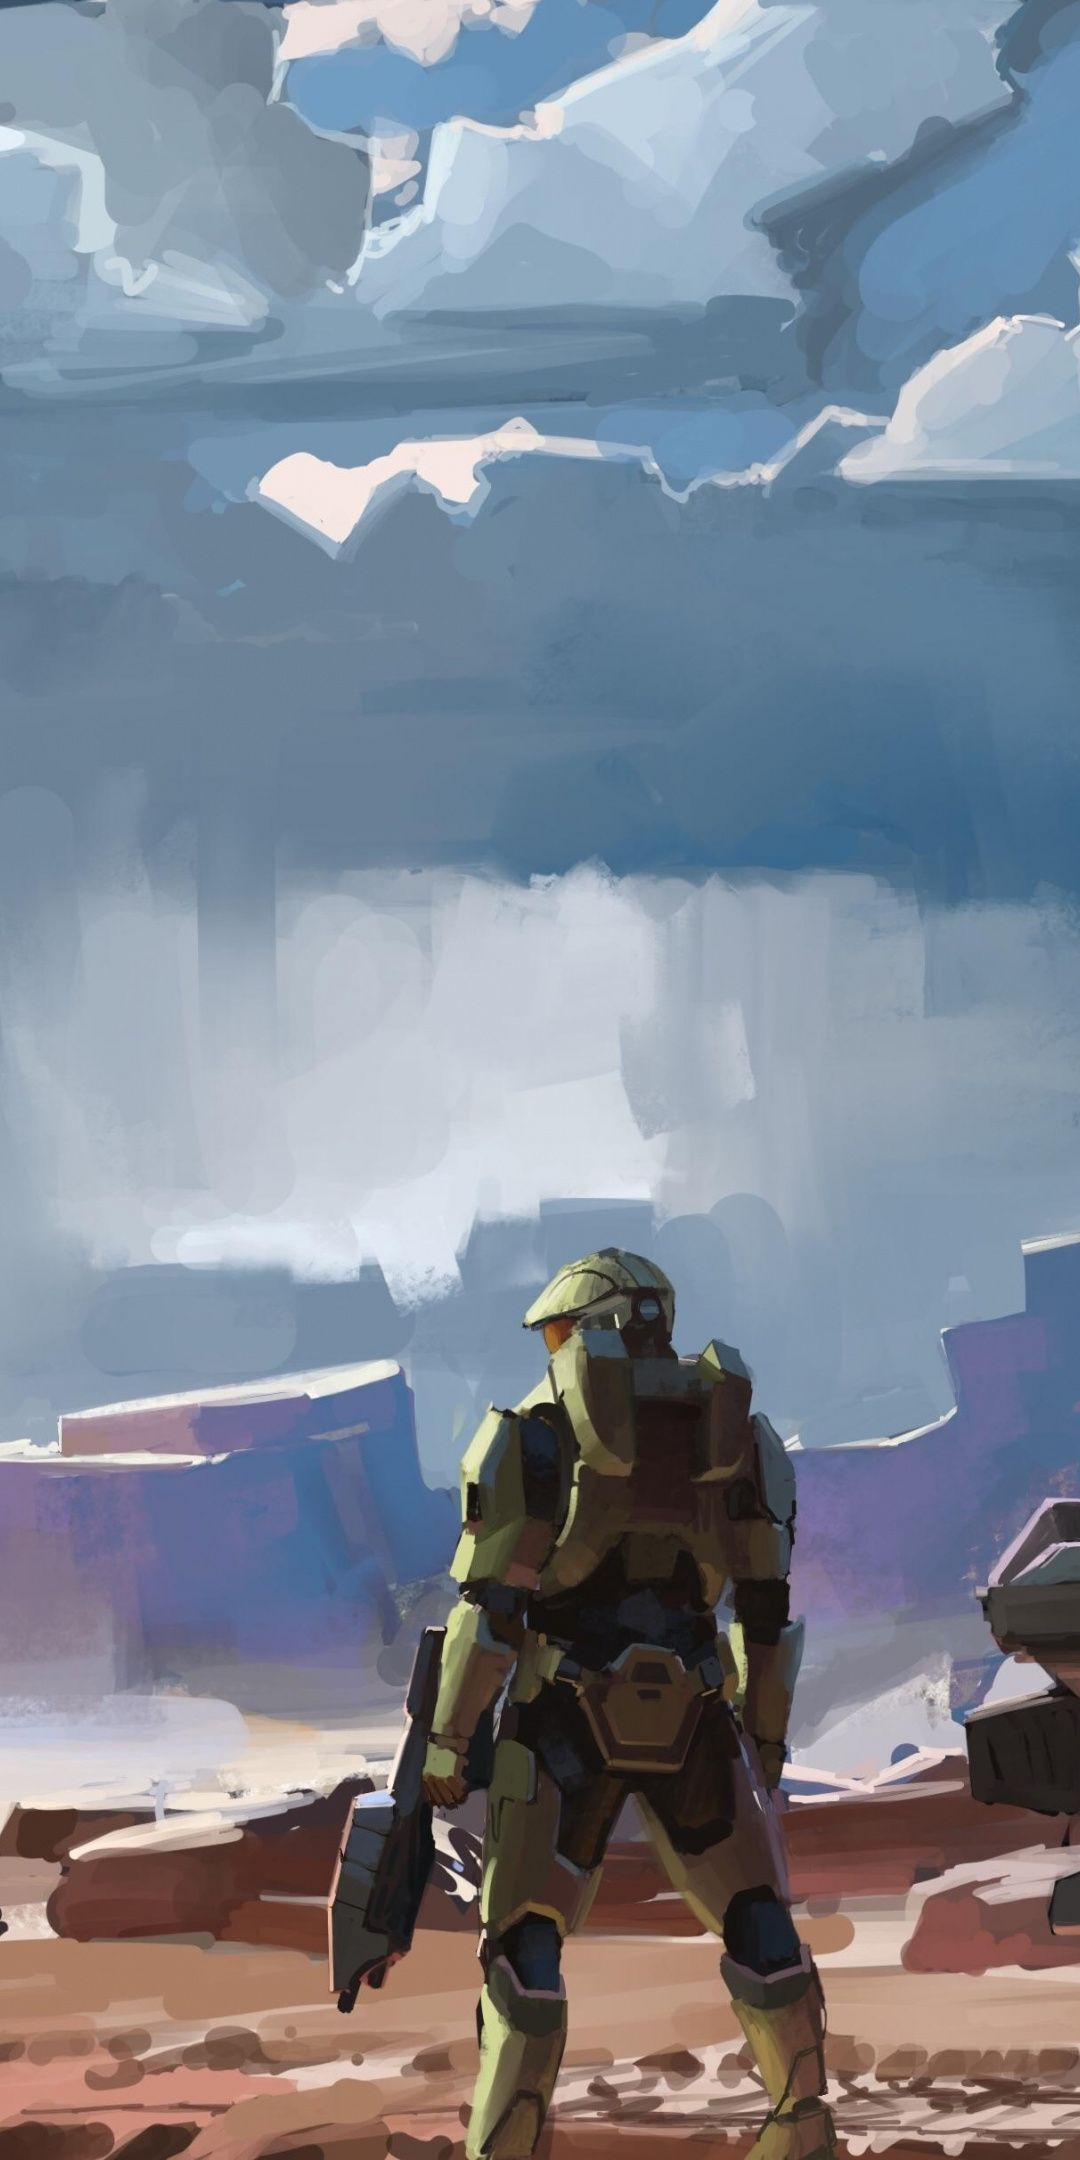 Artwork Video Game Halo Infinite Soldier 1080x2160 Wallpaper Halo Halo Drawings Best Gaming Wallpapers